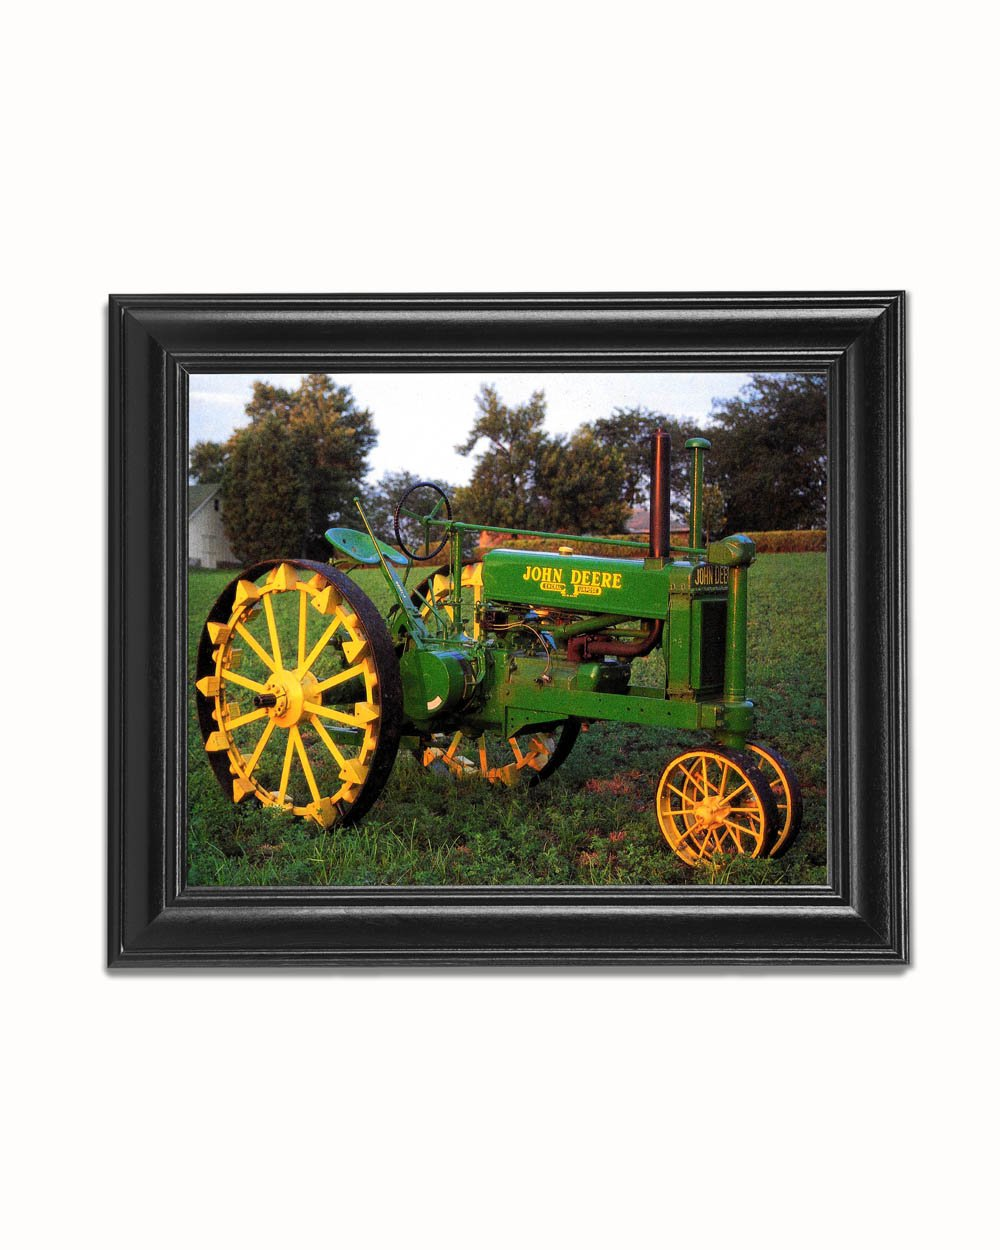 Amazoncom Old Metal Wheels John Deere Black Framed 8x10 Art Print